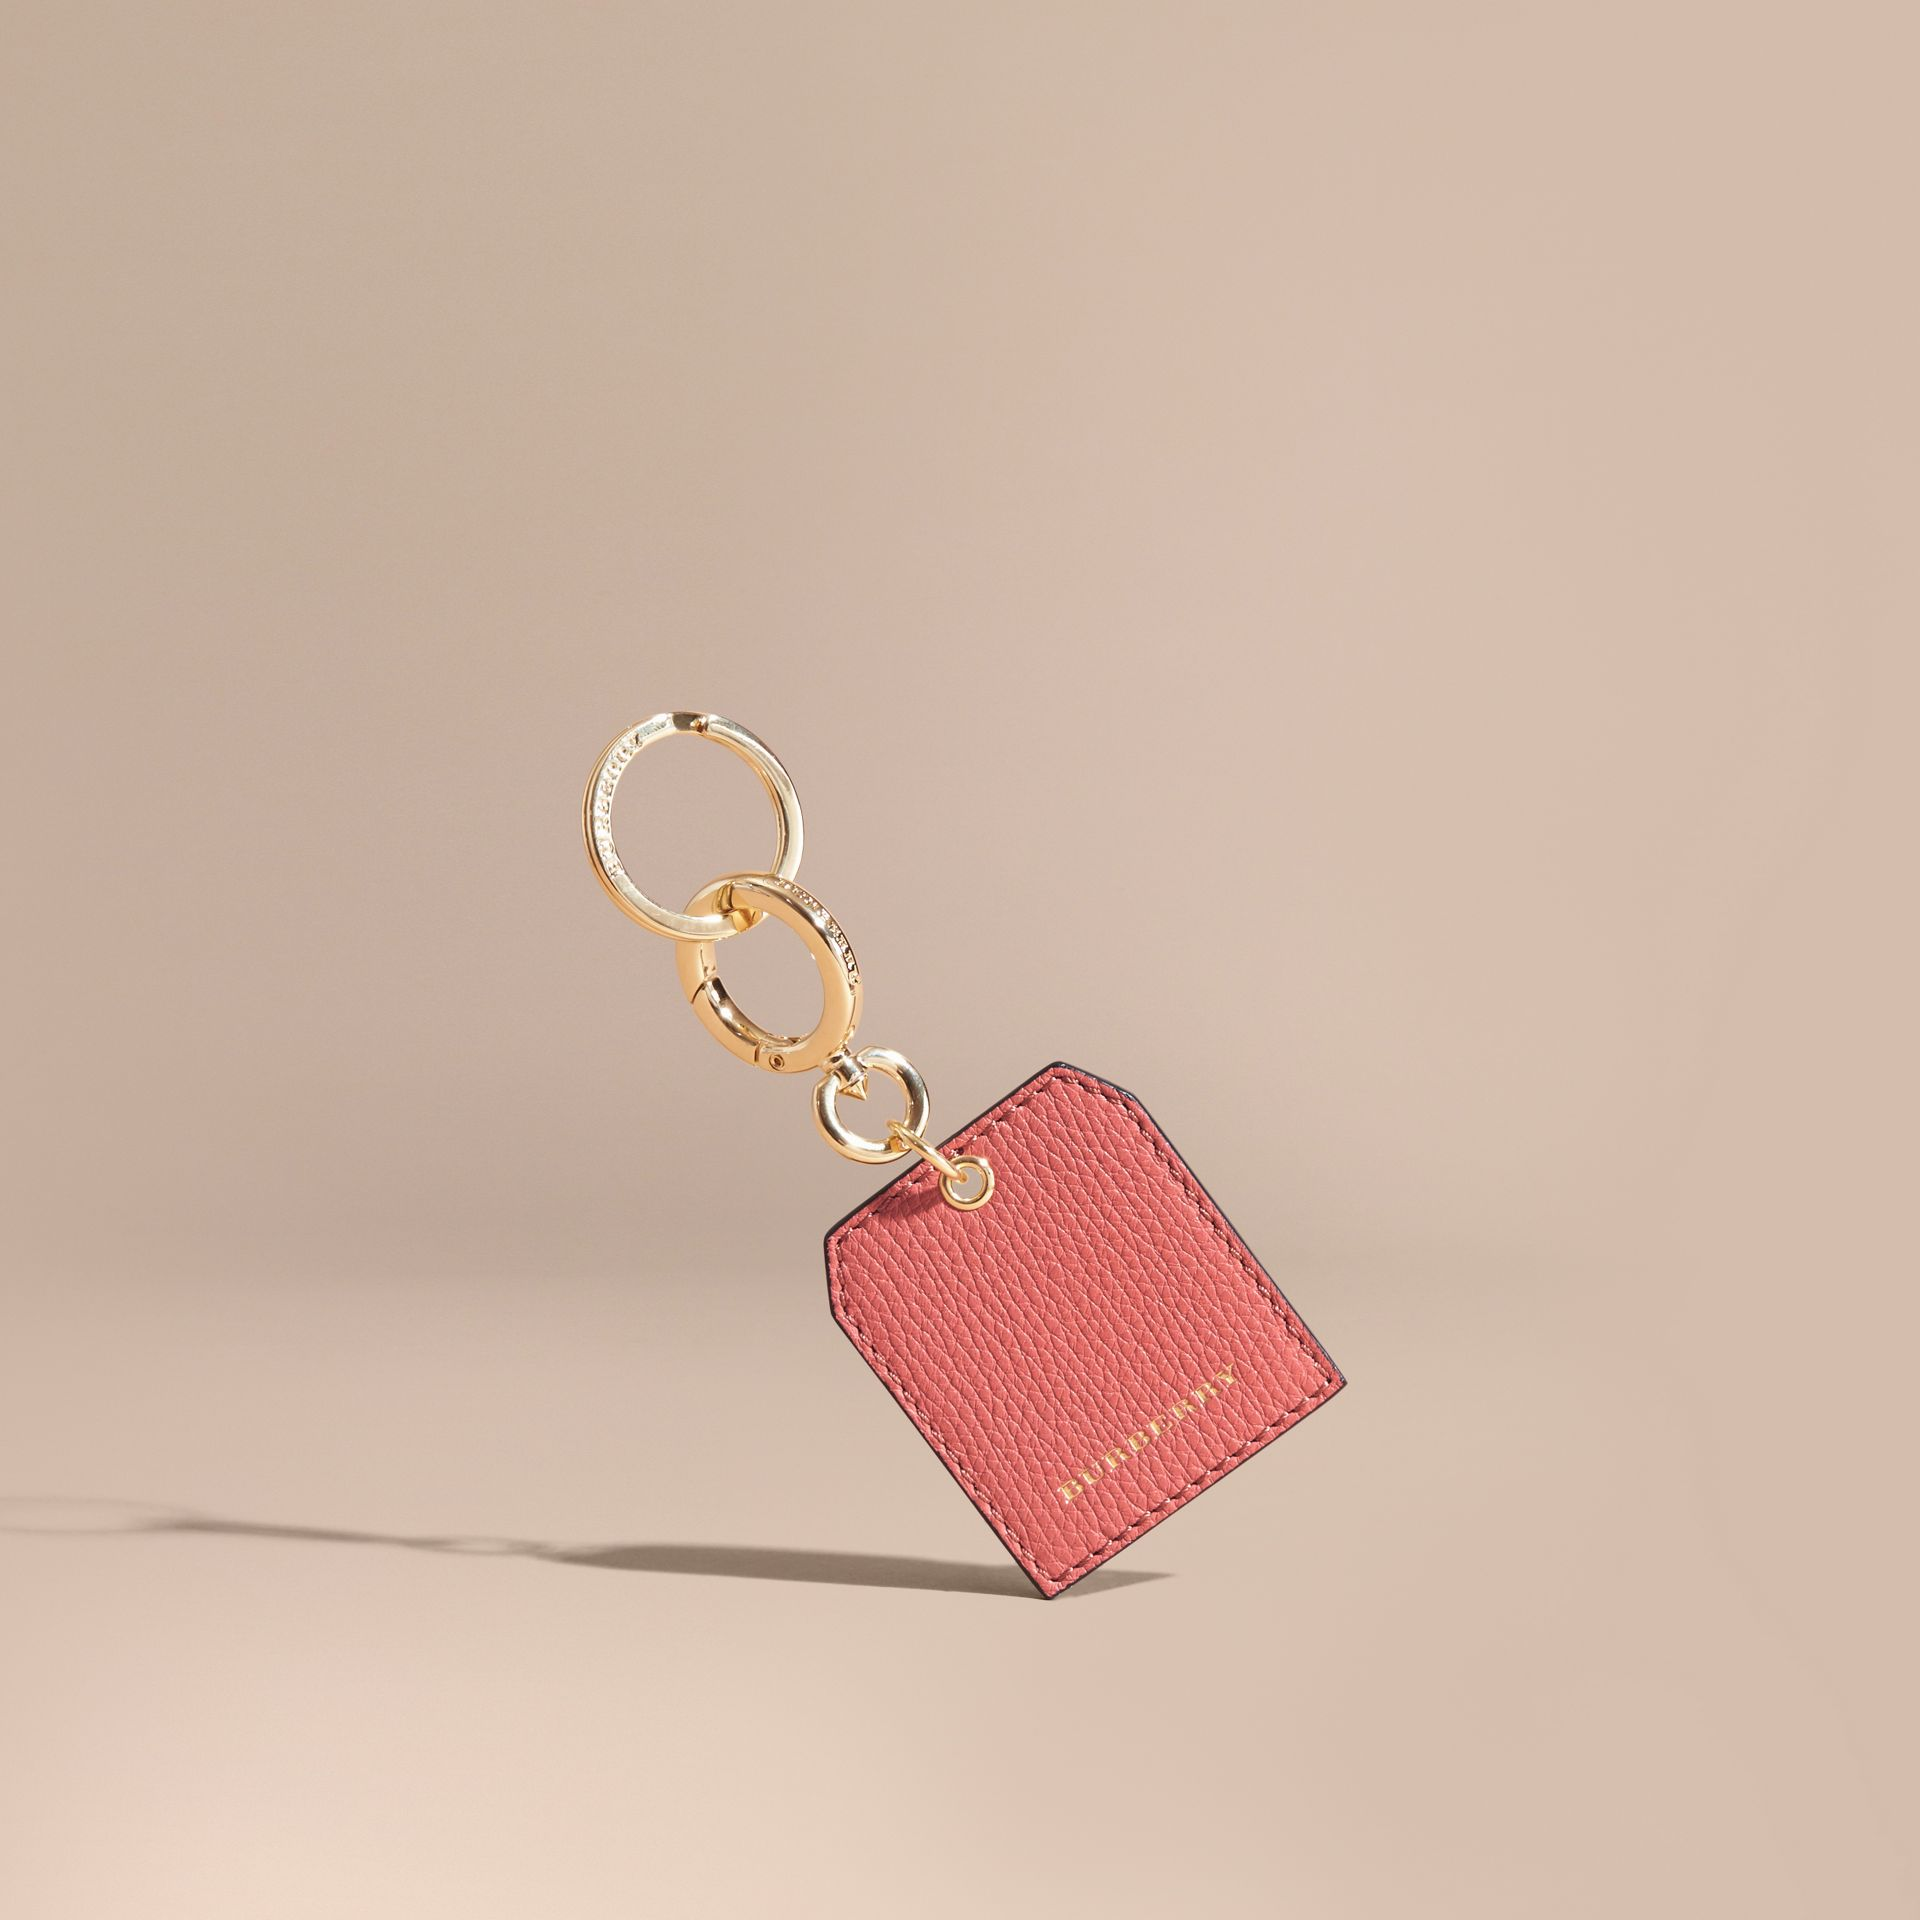 Grainy Leather Key Charm in Copper Pink - Women | Burberry Hong Kong - gallery image 1